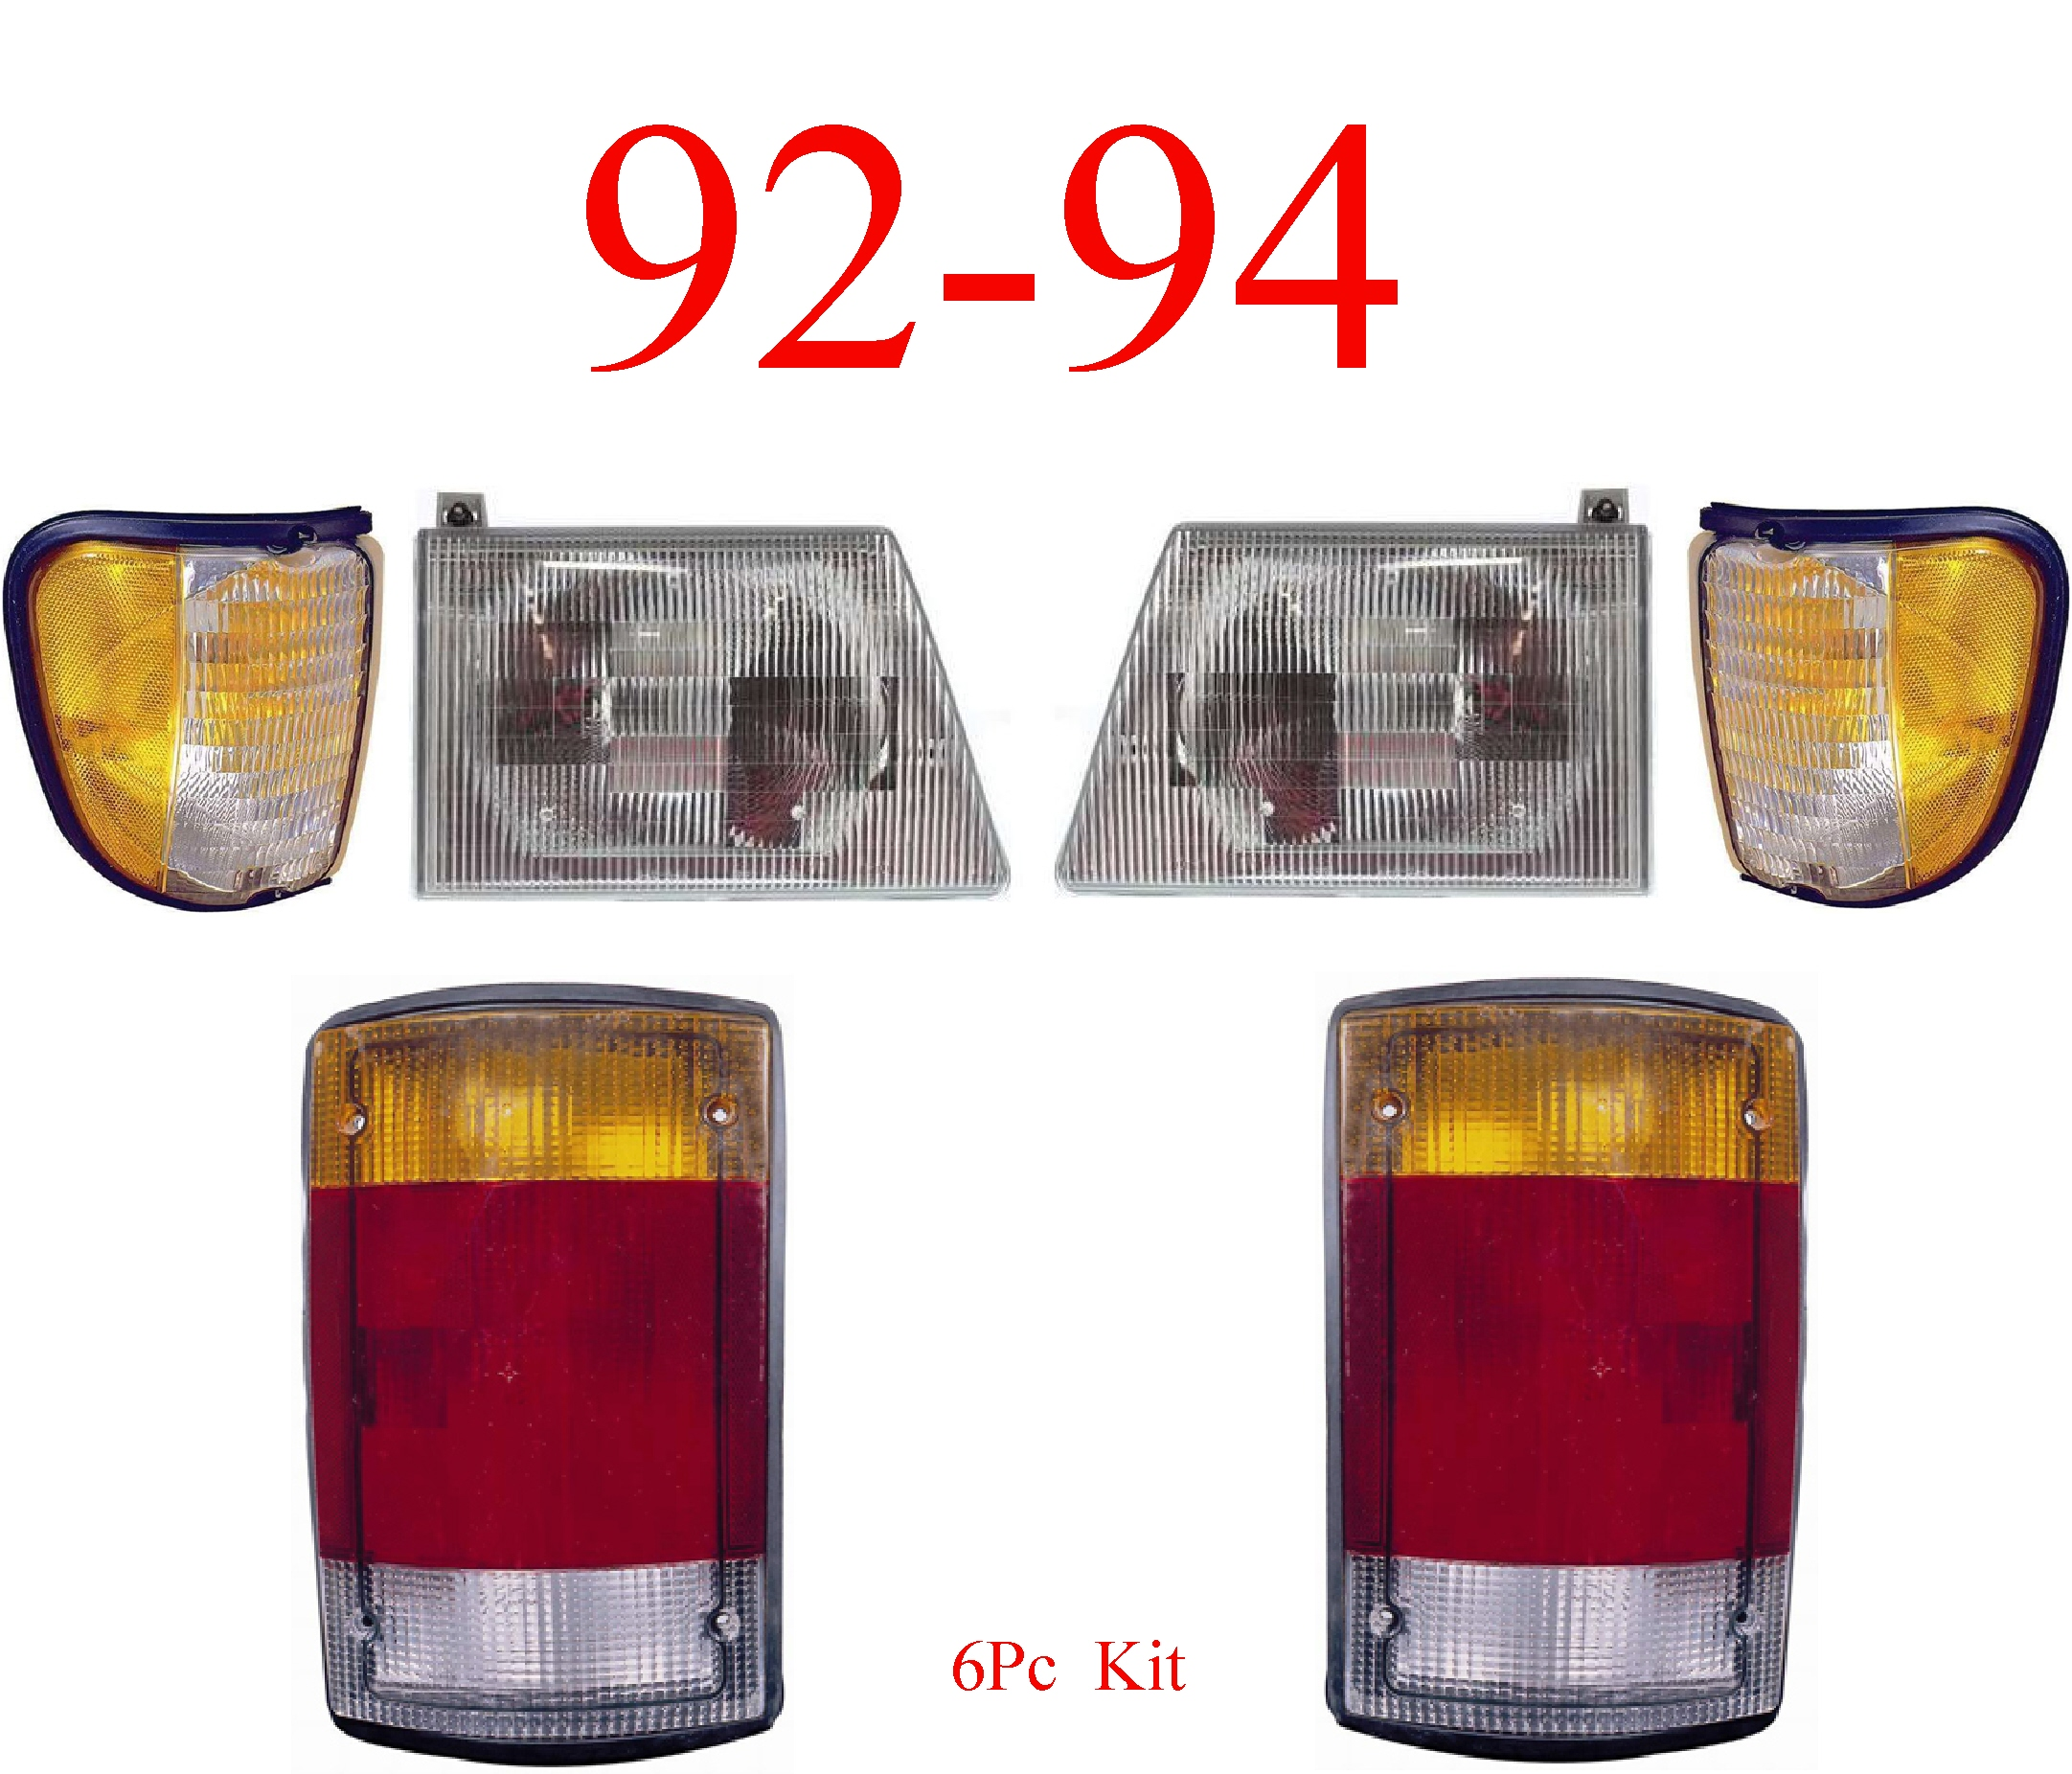 92-94 Ford Econoline 6Pc Head, Side & Tail Light Kit